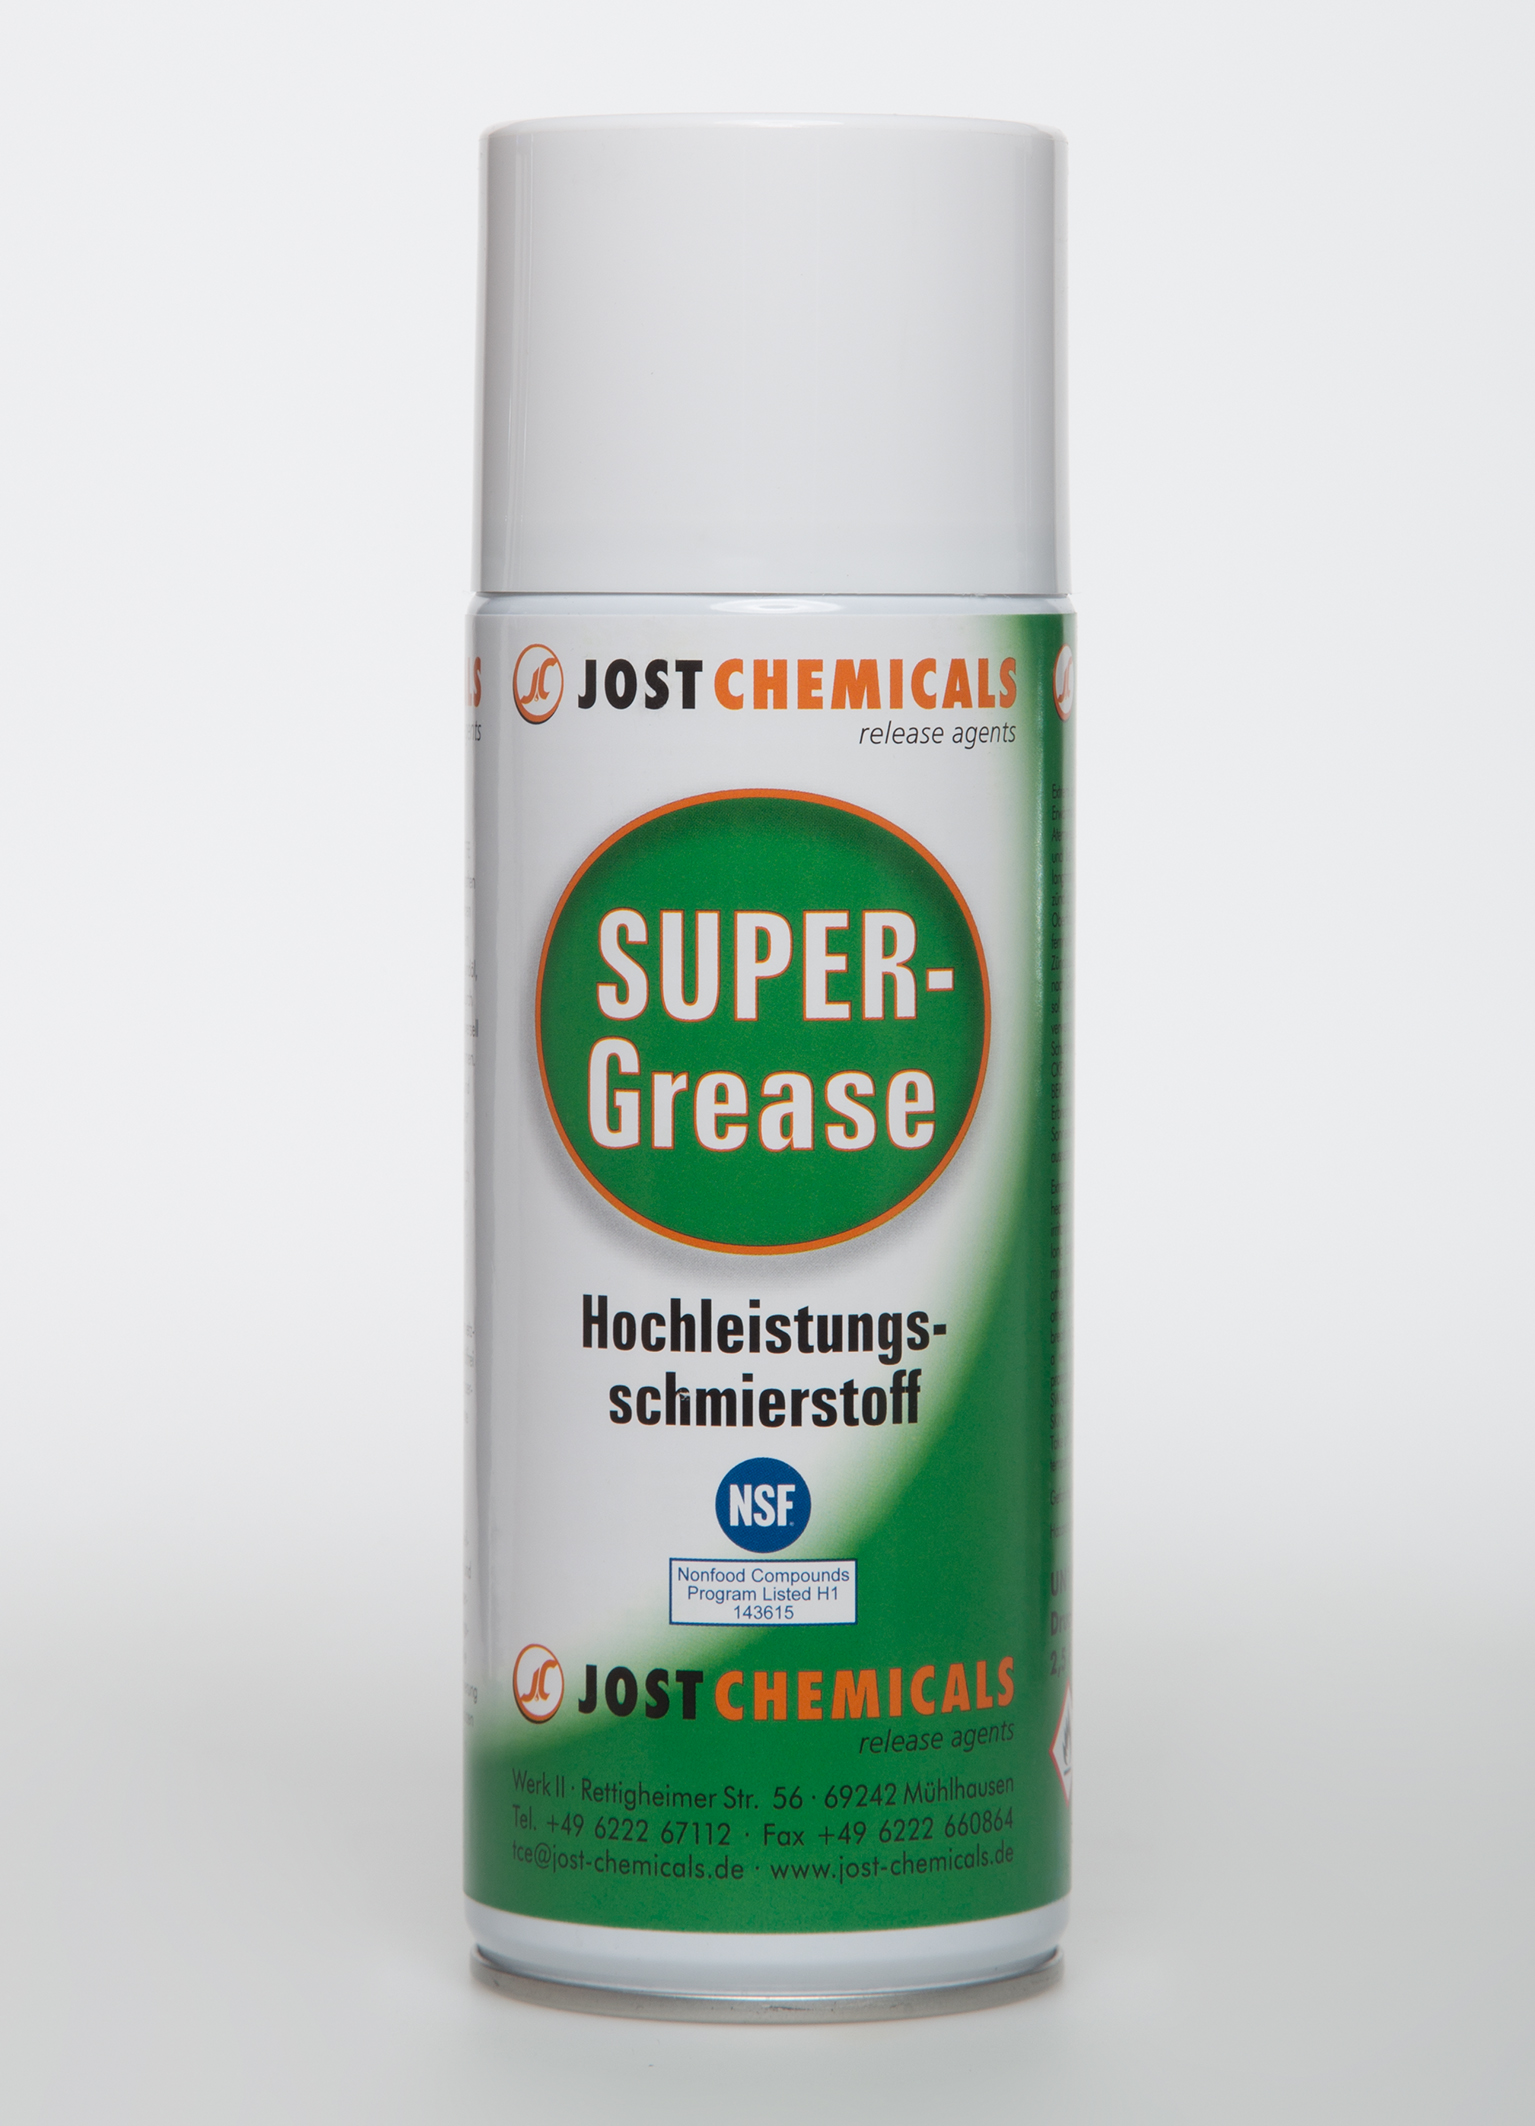 Super Grease - Jost Chemicals GmbH